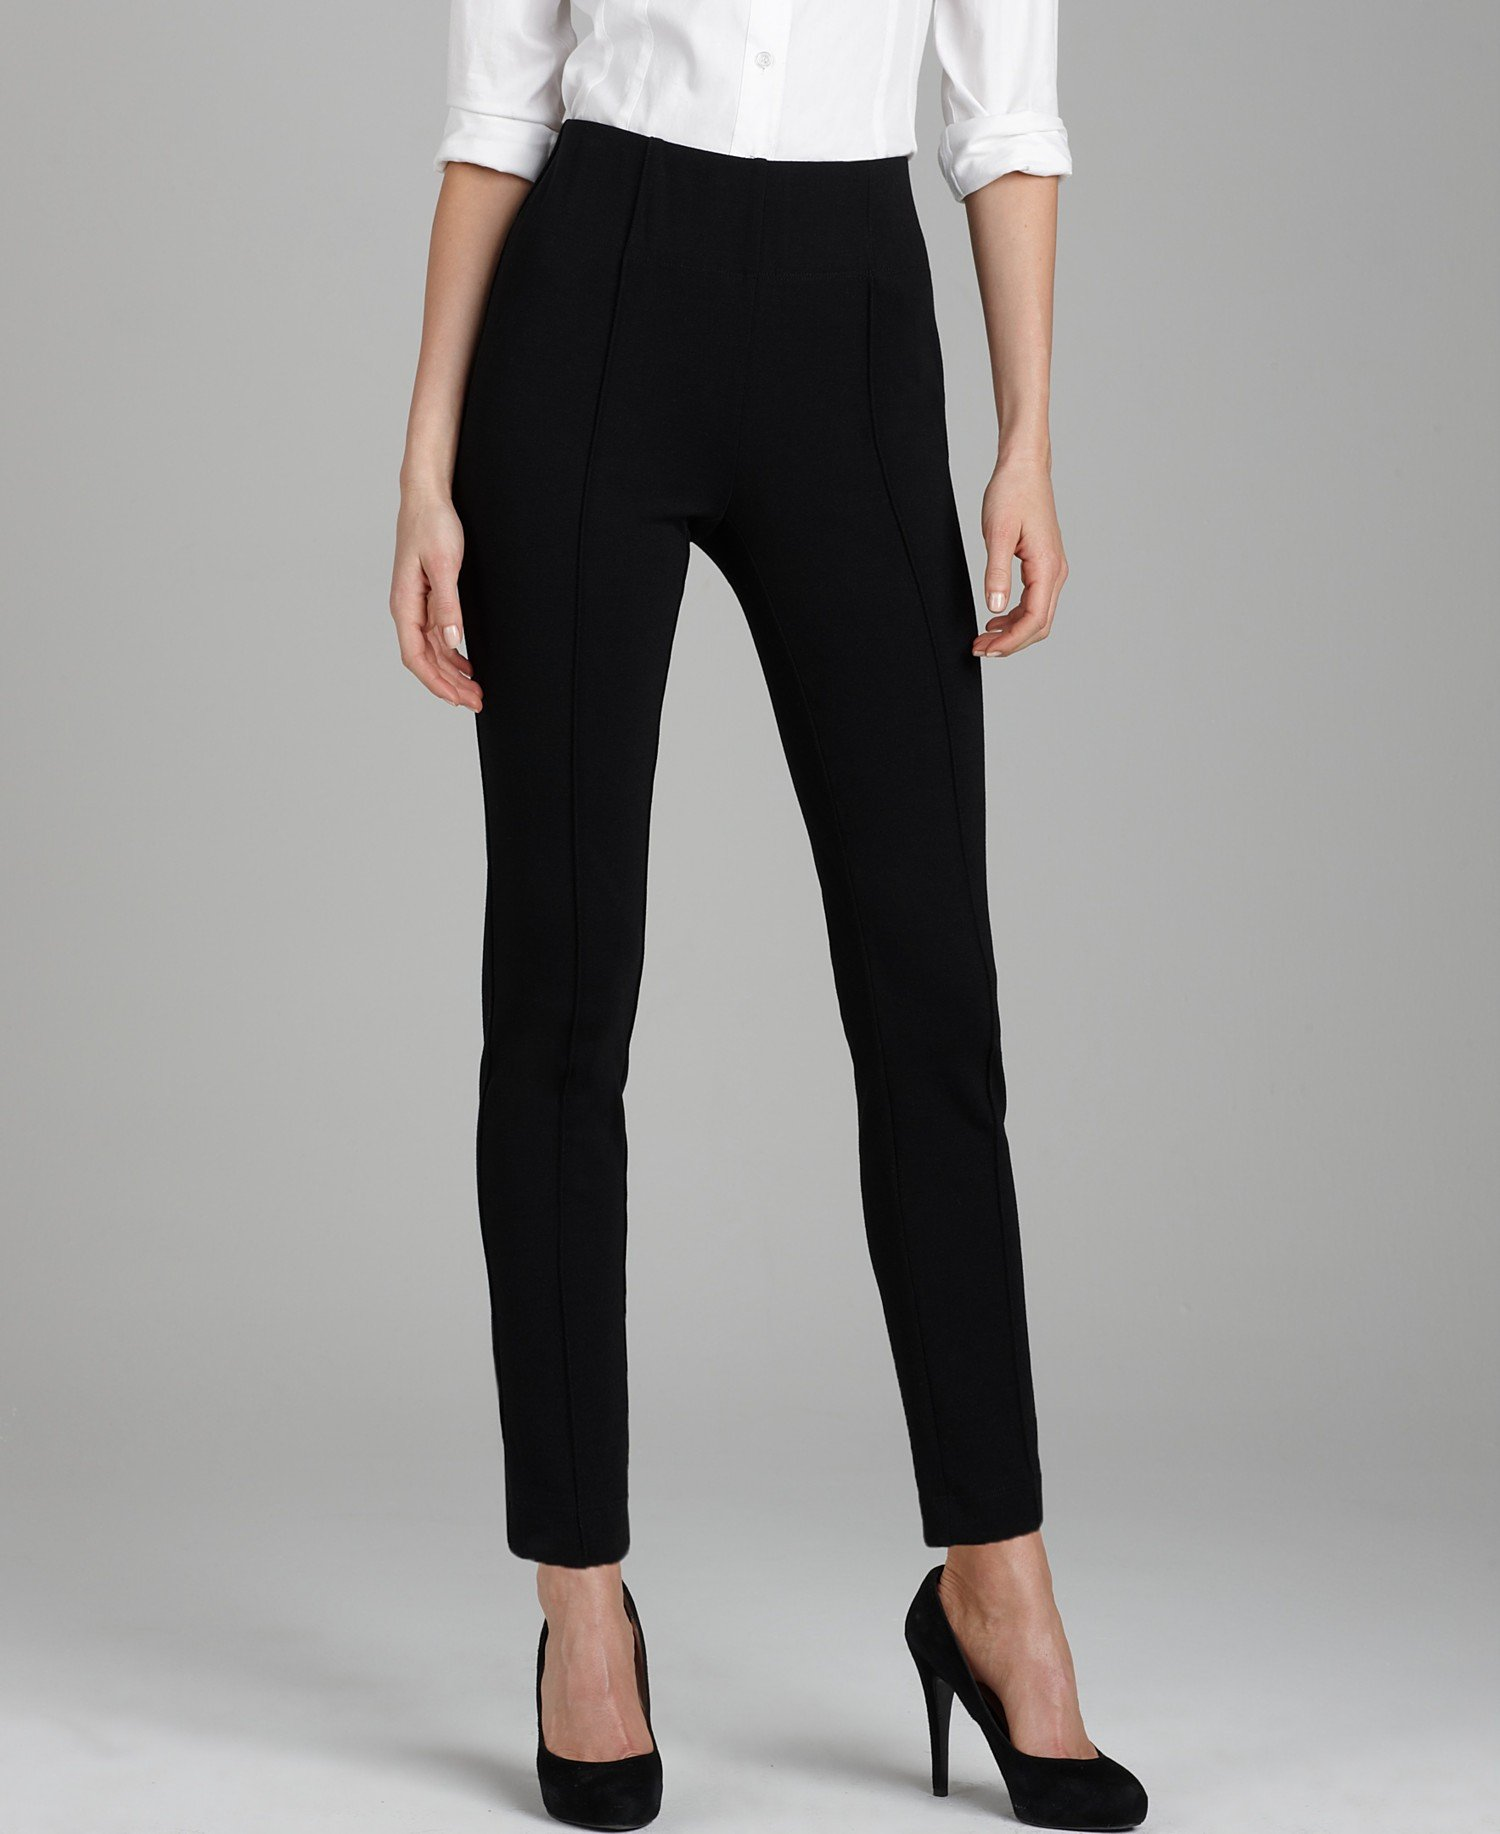 Style & Co. Legging Pants Ebony Black (Small Petite)